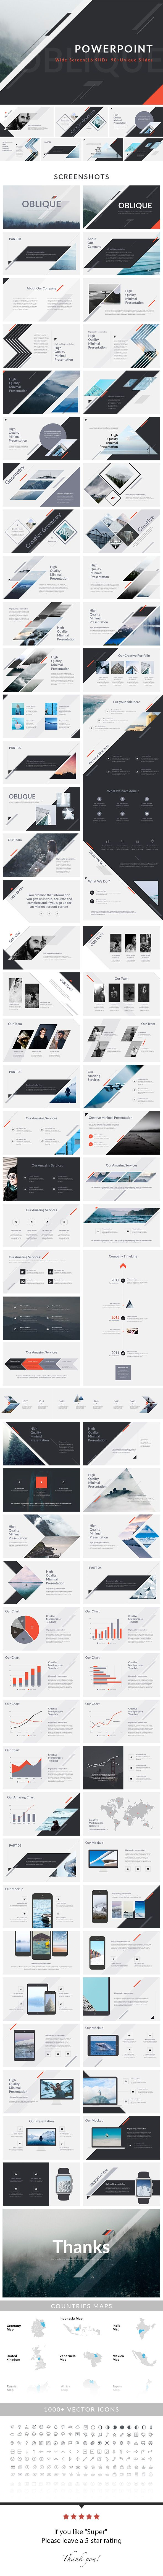 Oblique - PowerPoint Presentation Template - Abstract PowerPoint Templates Download here: https://graphicriver.net/item/oblique-powerpoint-presentation-template/19780655?ref=classicdesignp